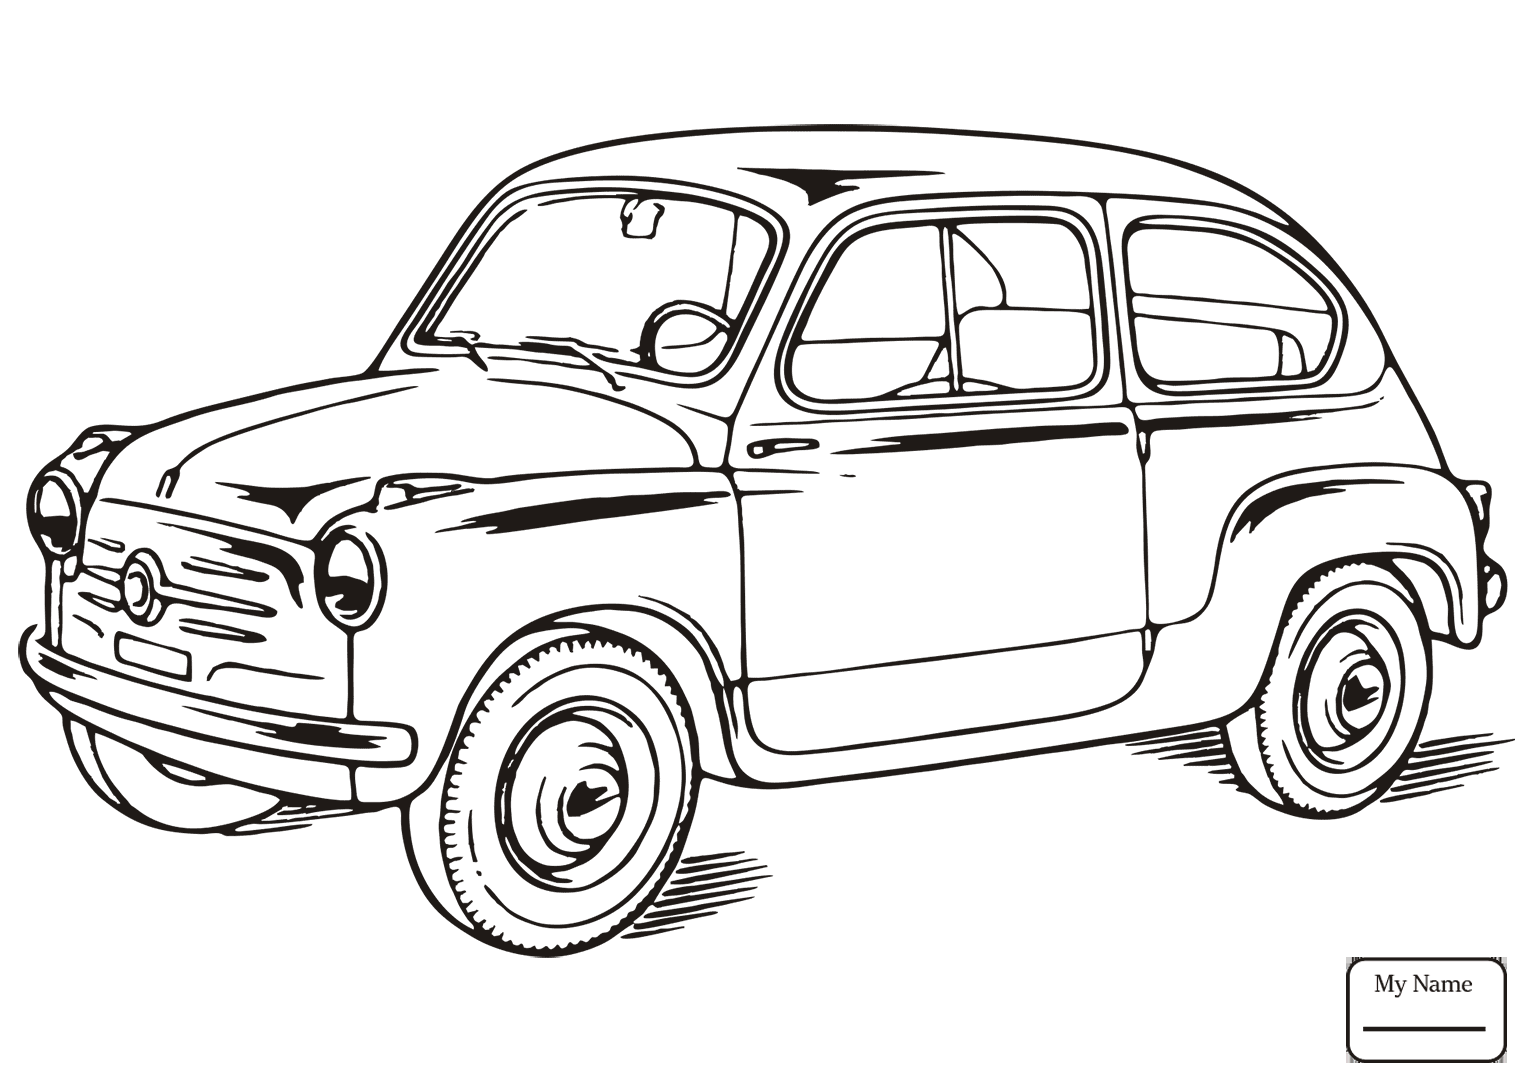 toyota car coloring pages toyota supra coloring pages at getcoloringscom free toyota car pages coloring